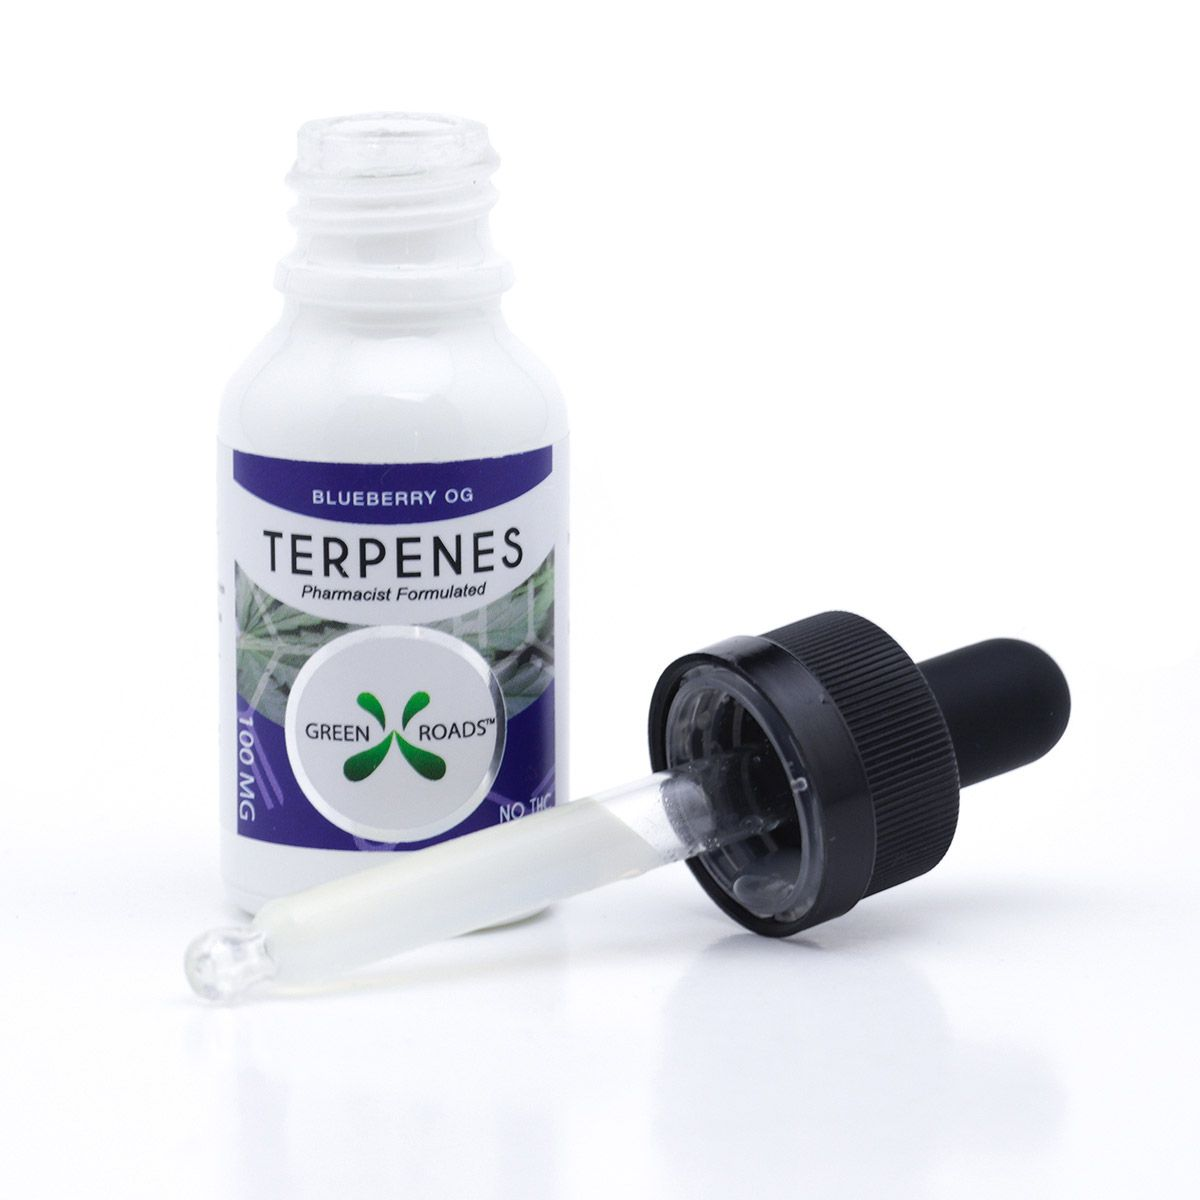 CBD Oil with Infused Terpenes (Sublingual + Vapeable) Blueberry OG 100 mg 0.5 fl. oz. (15 mL)